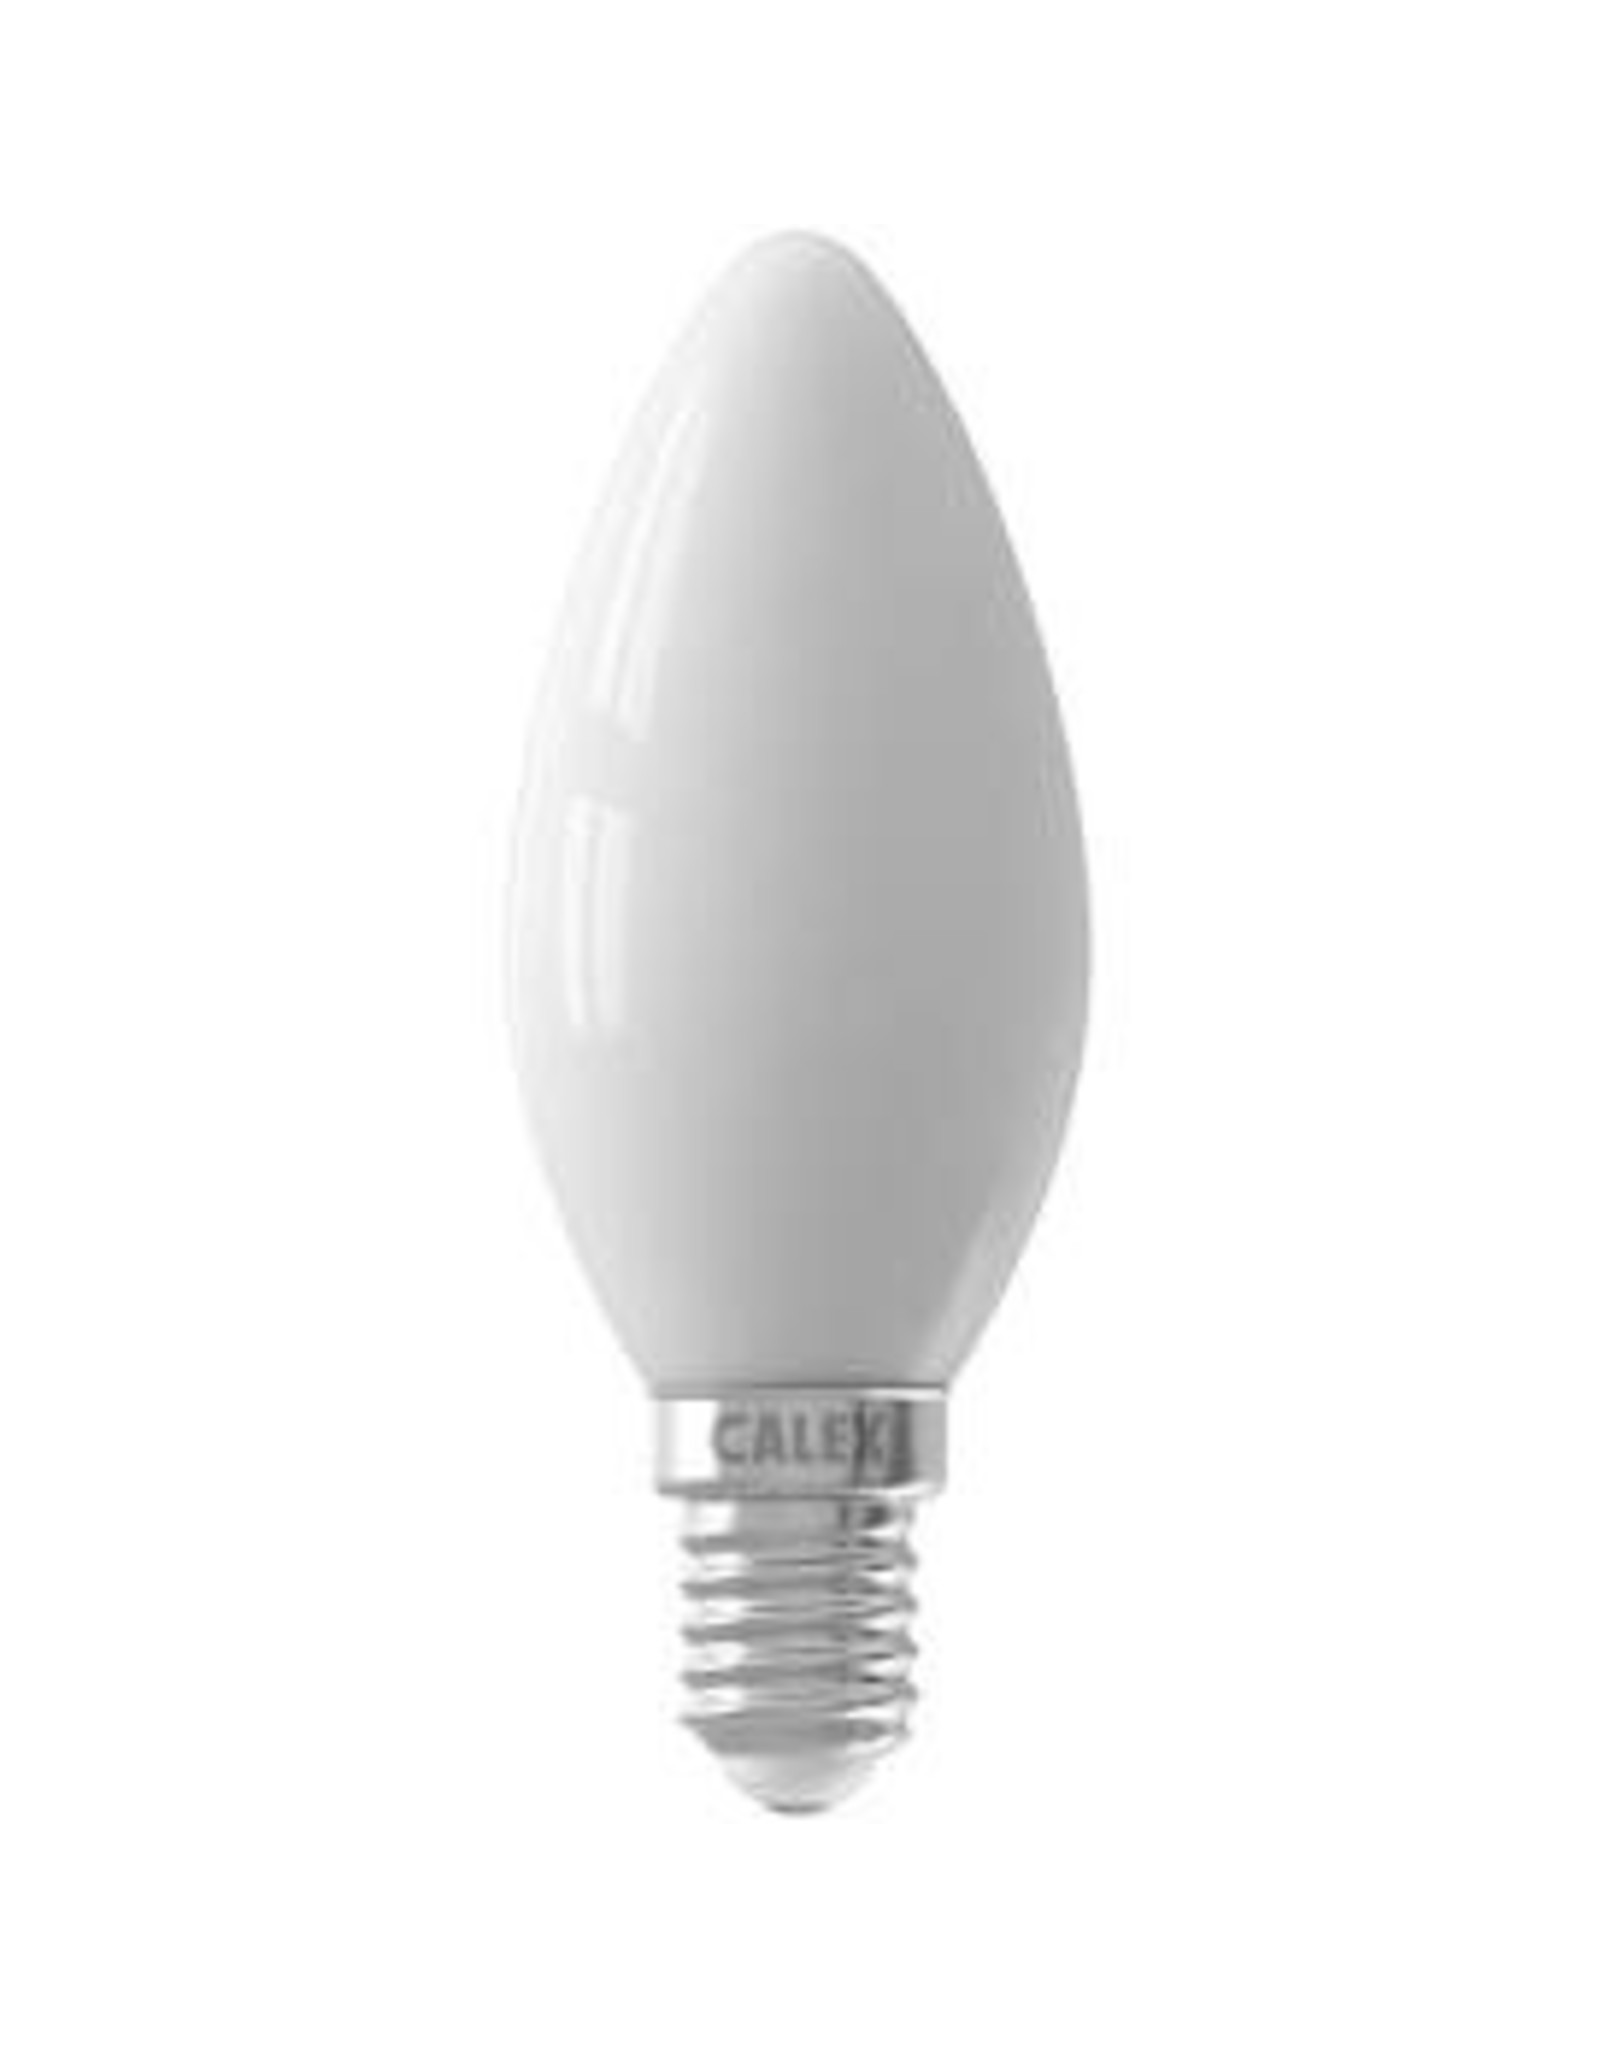 Calex LED Full Glass Filament Candle-lamp 220-240V 3,5W 290lm E14 B35, Softline 2700K CRI80 Dimmable, energy label A+